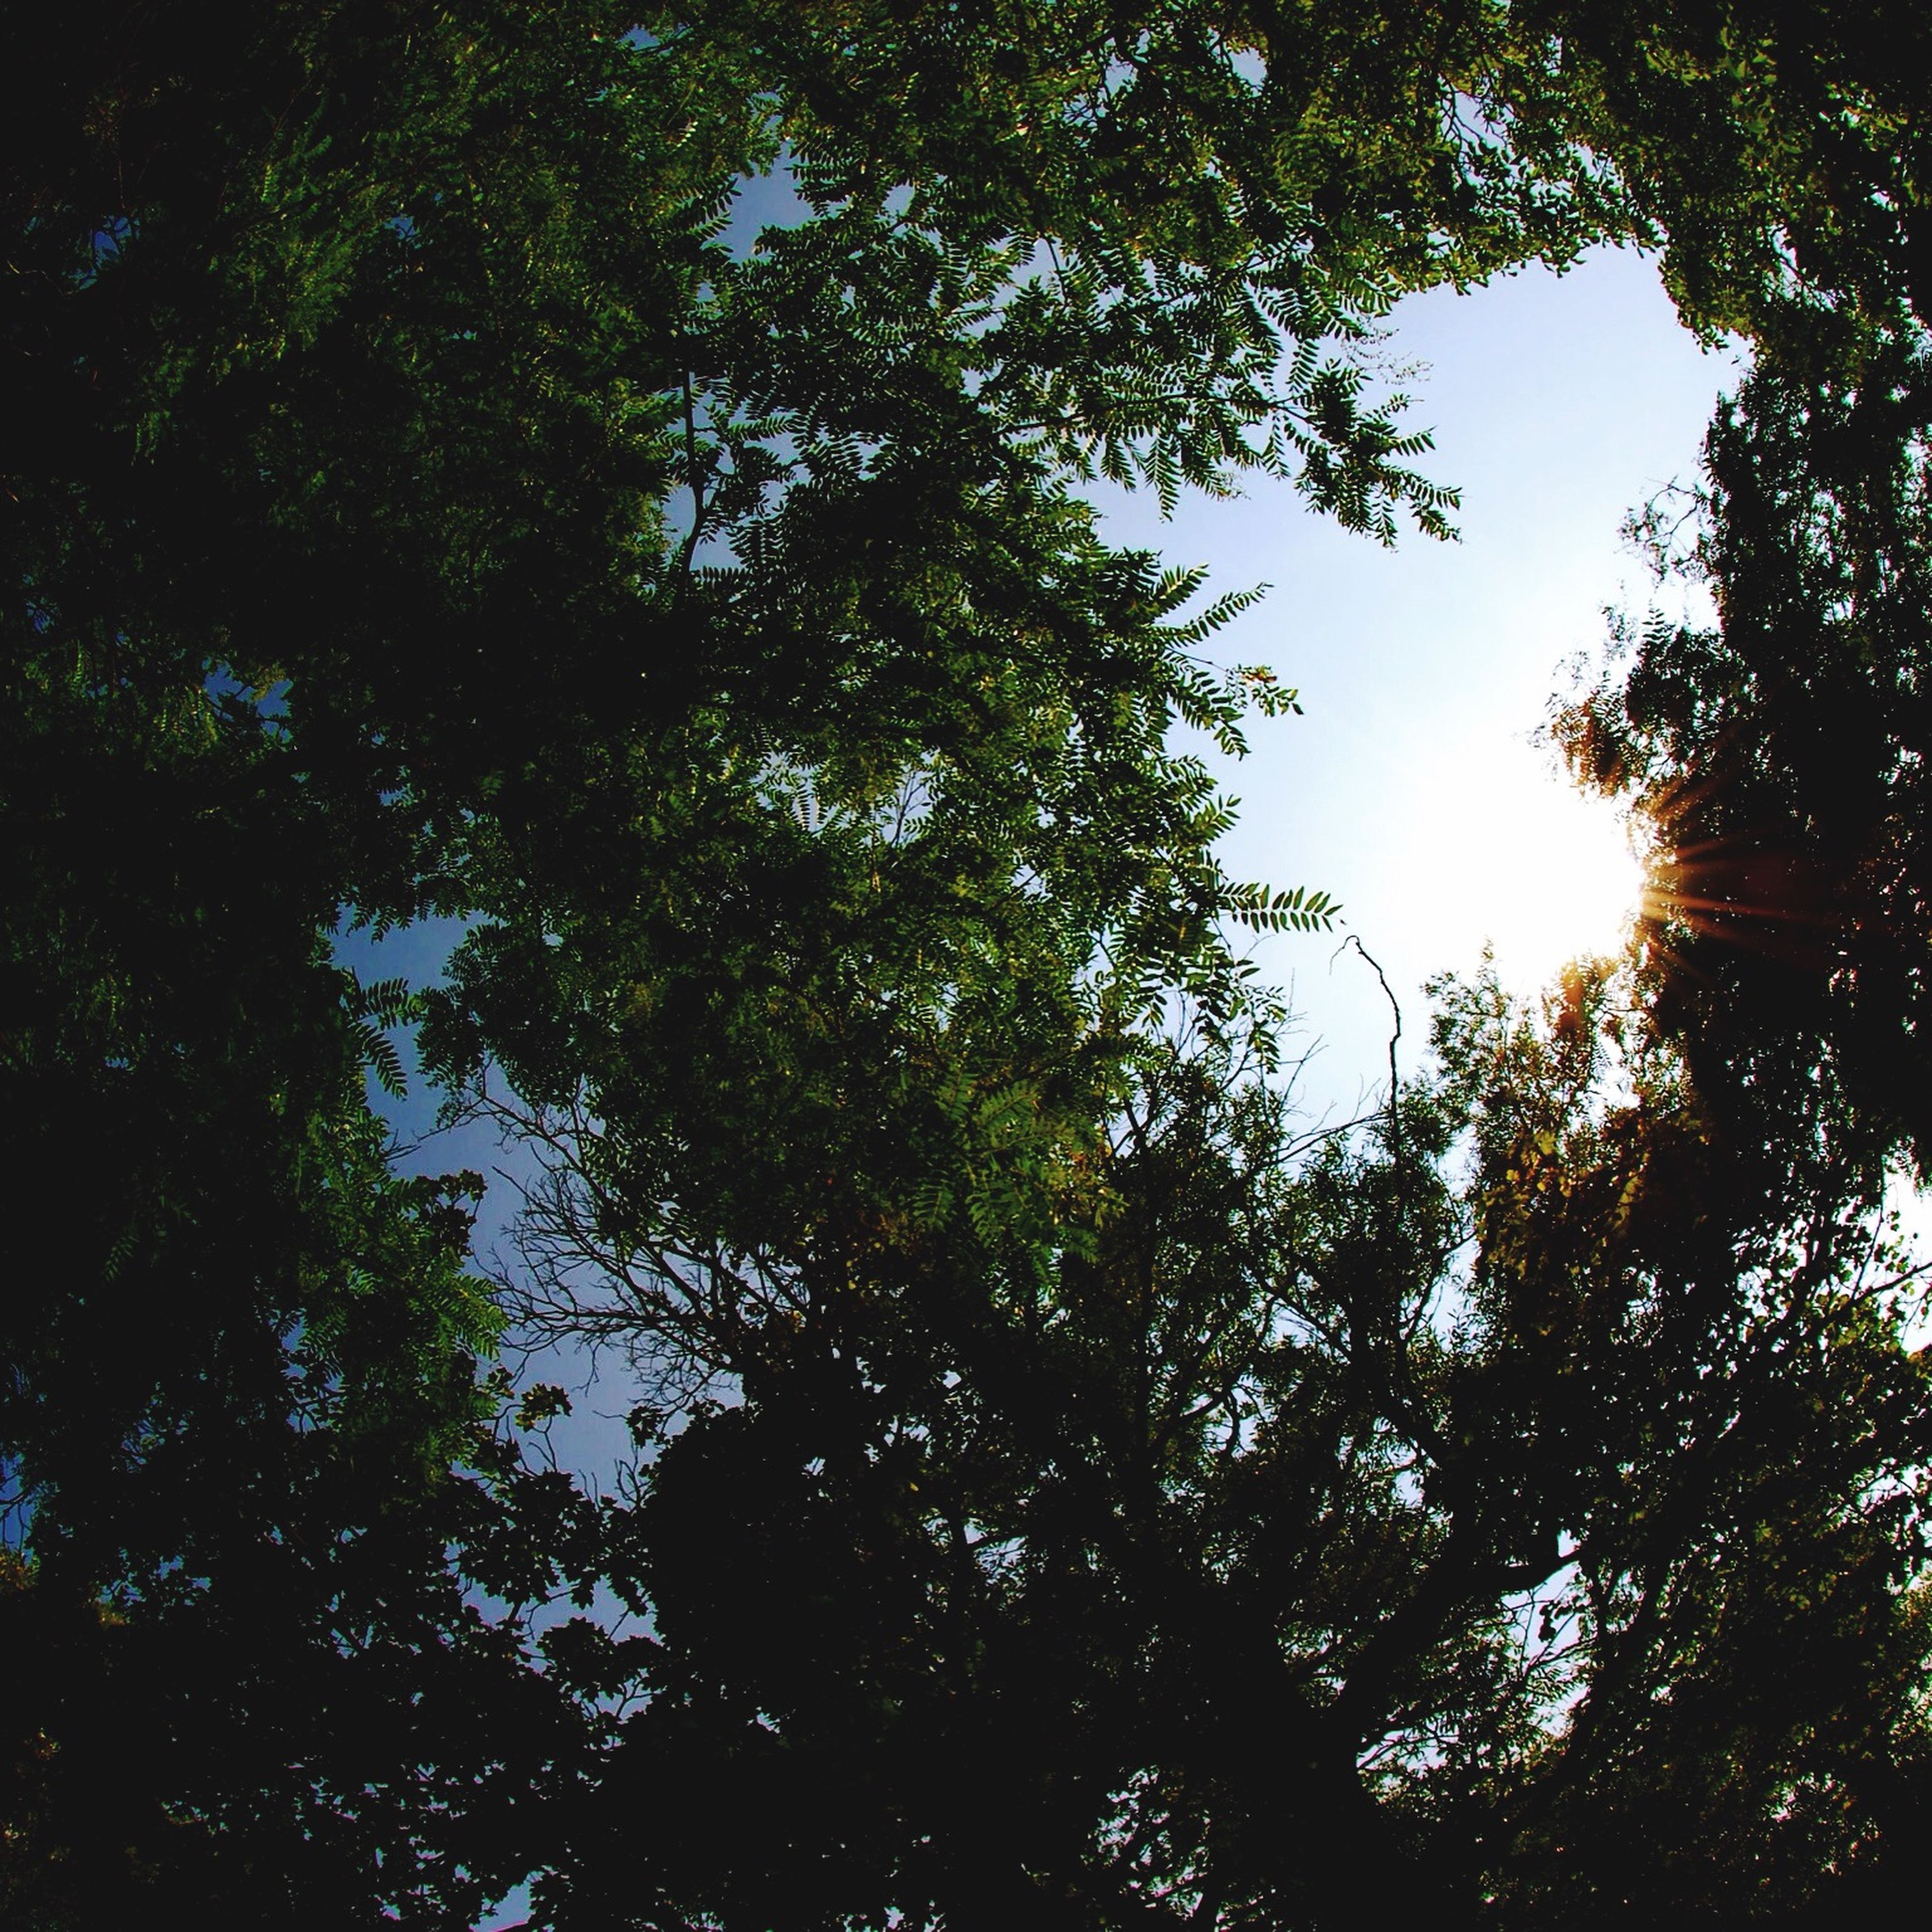 tree, low angle view, branch, growth, tranquility, nature, beauty in nature, forest, sky, green color, scenics, sunlight, tranquil scene, outdoors, leaf, no people, day, lush foliage, silhouette, clear sky